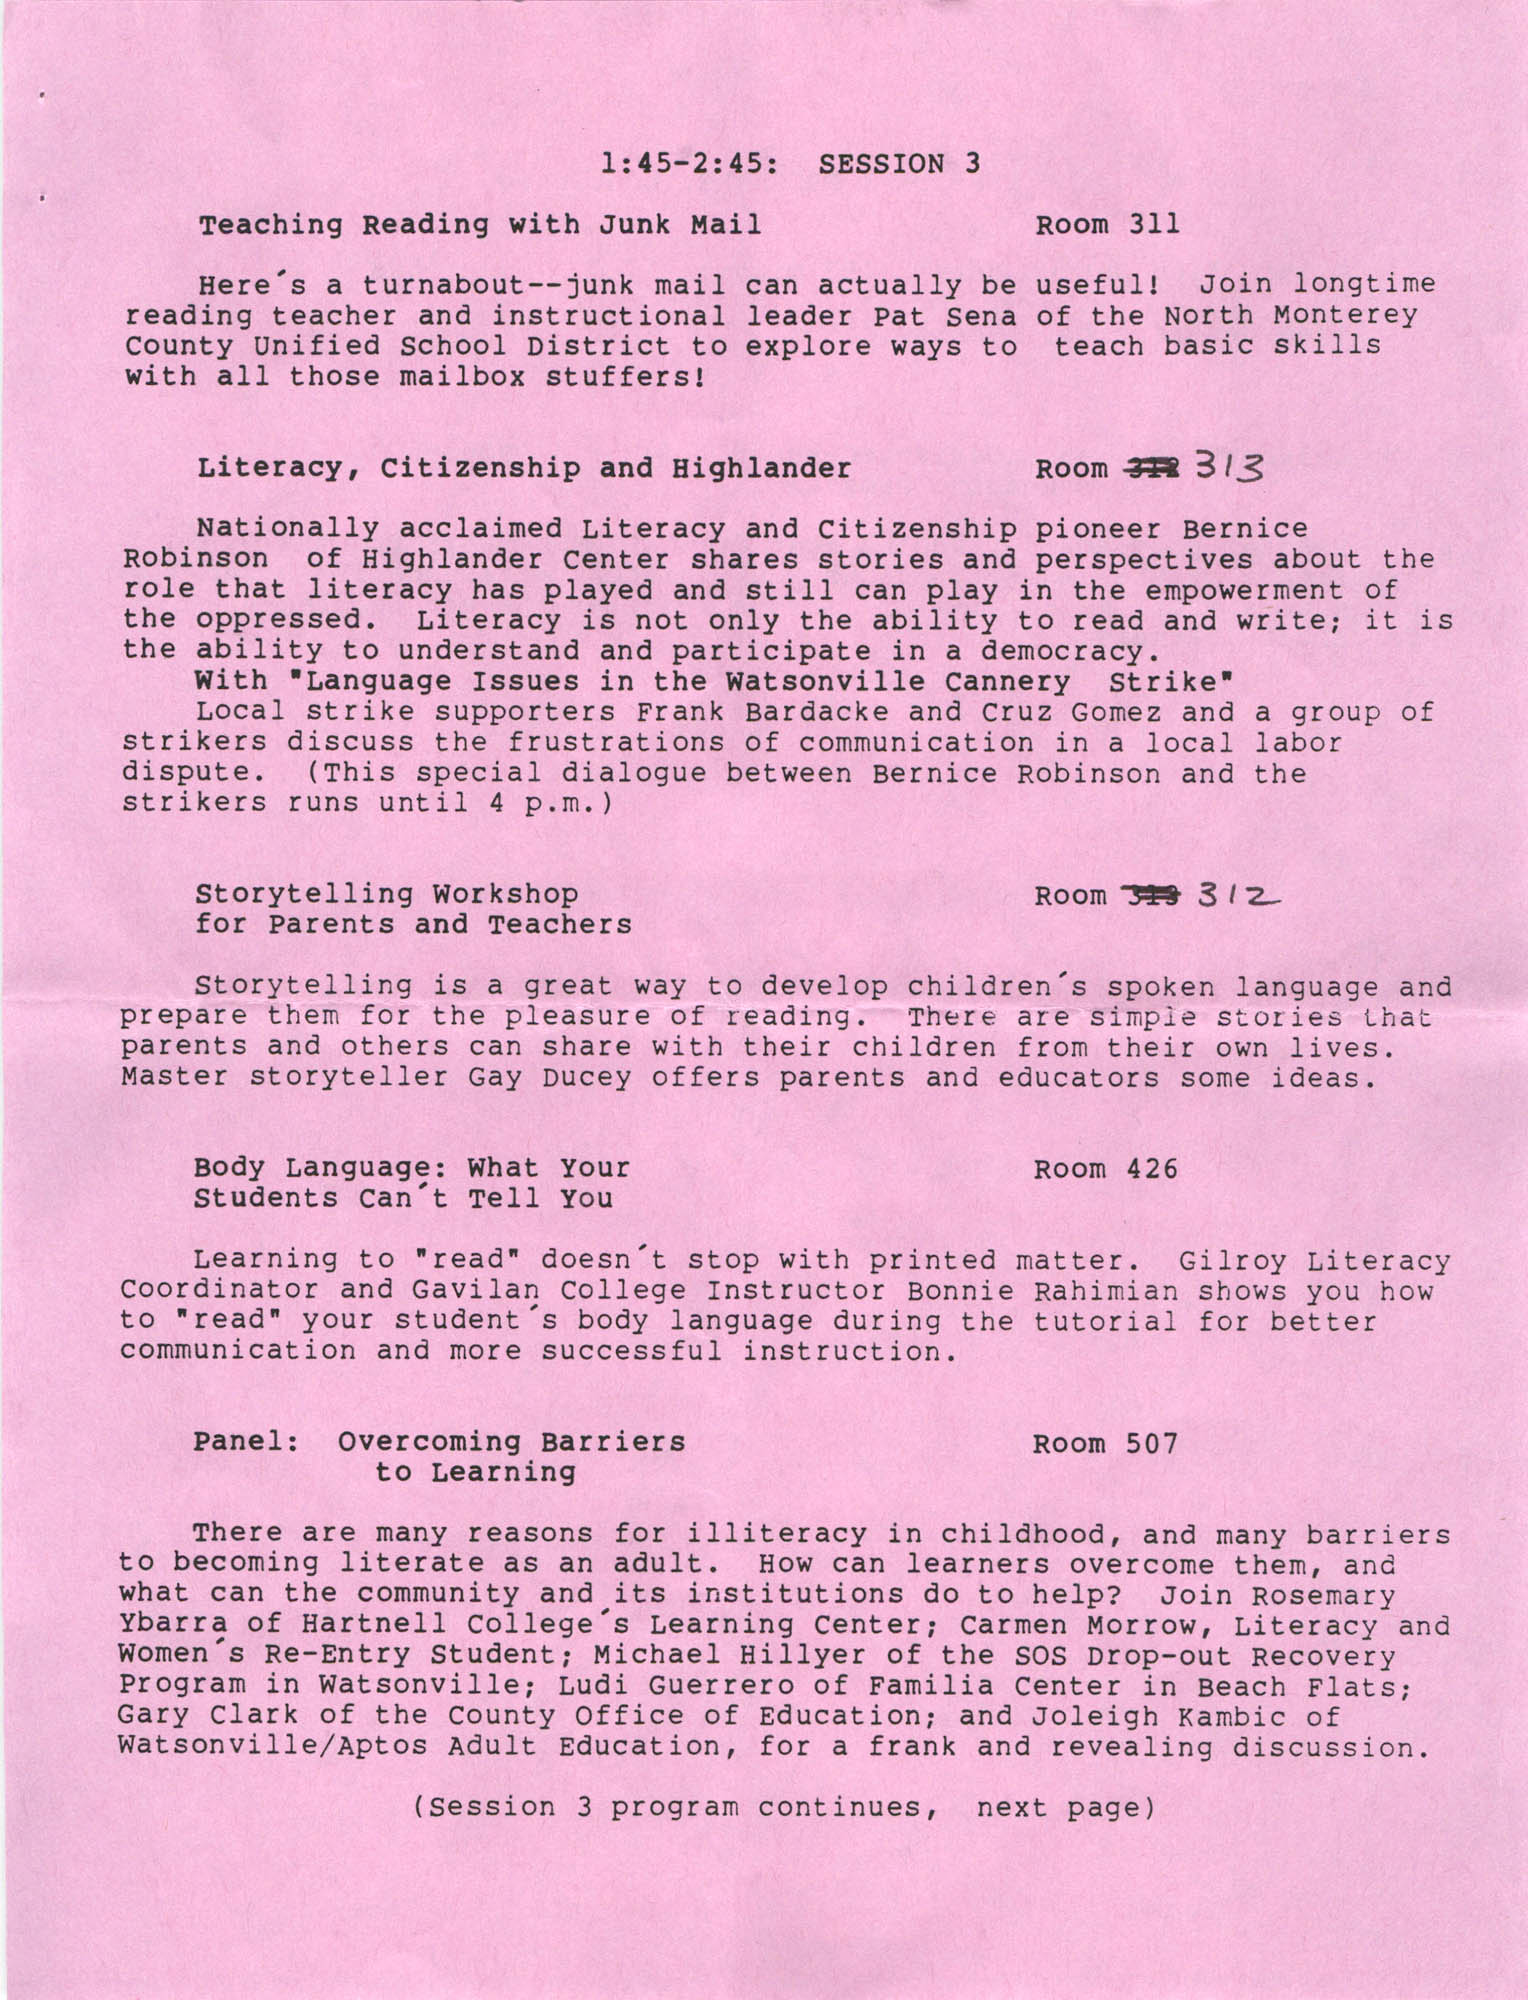 Second Annual Central Coast Literacy Conference Program and Schedule of Events, October 11, 1986, Page 7